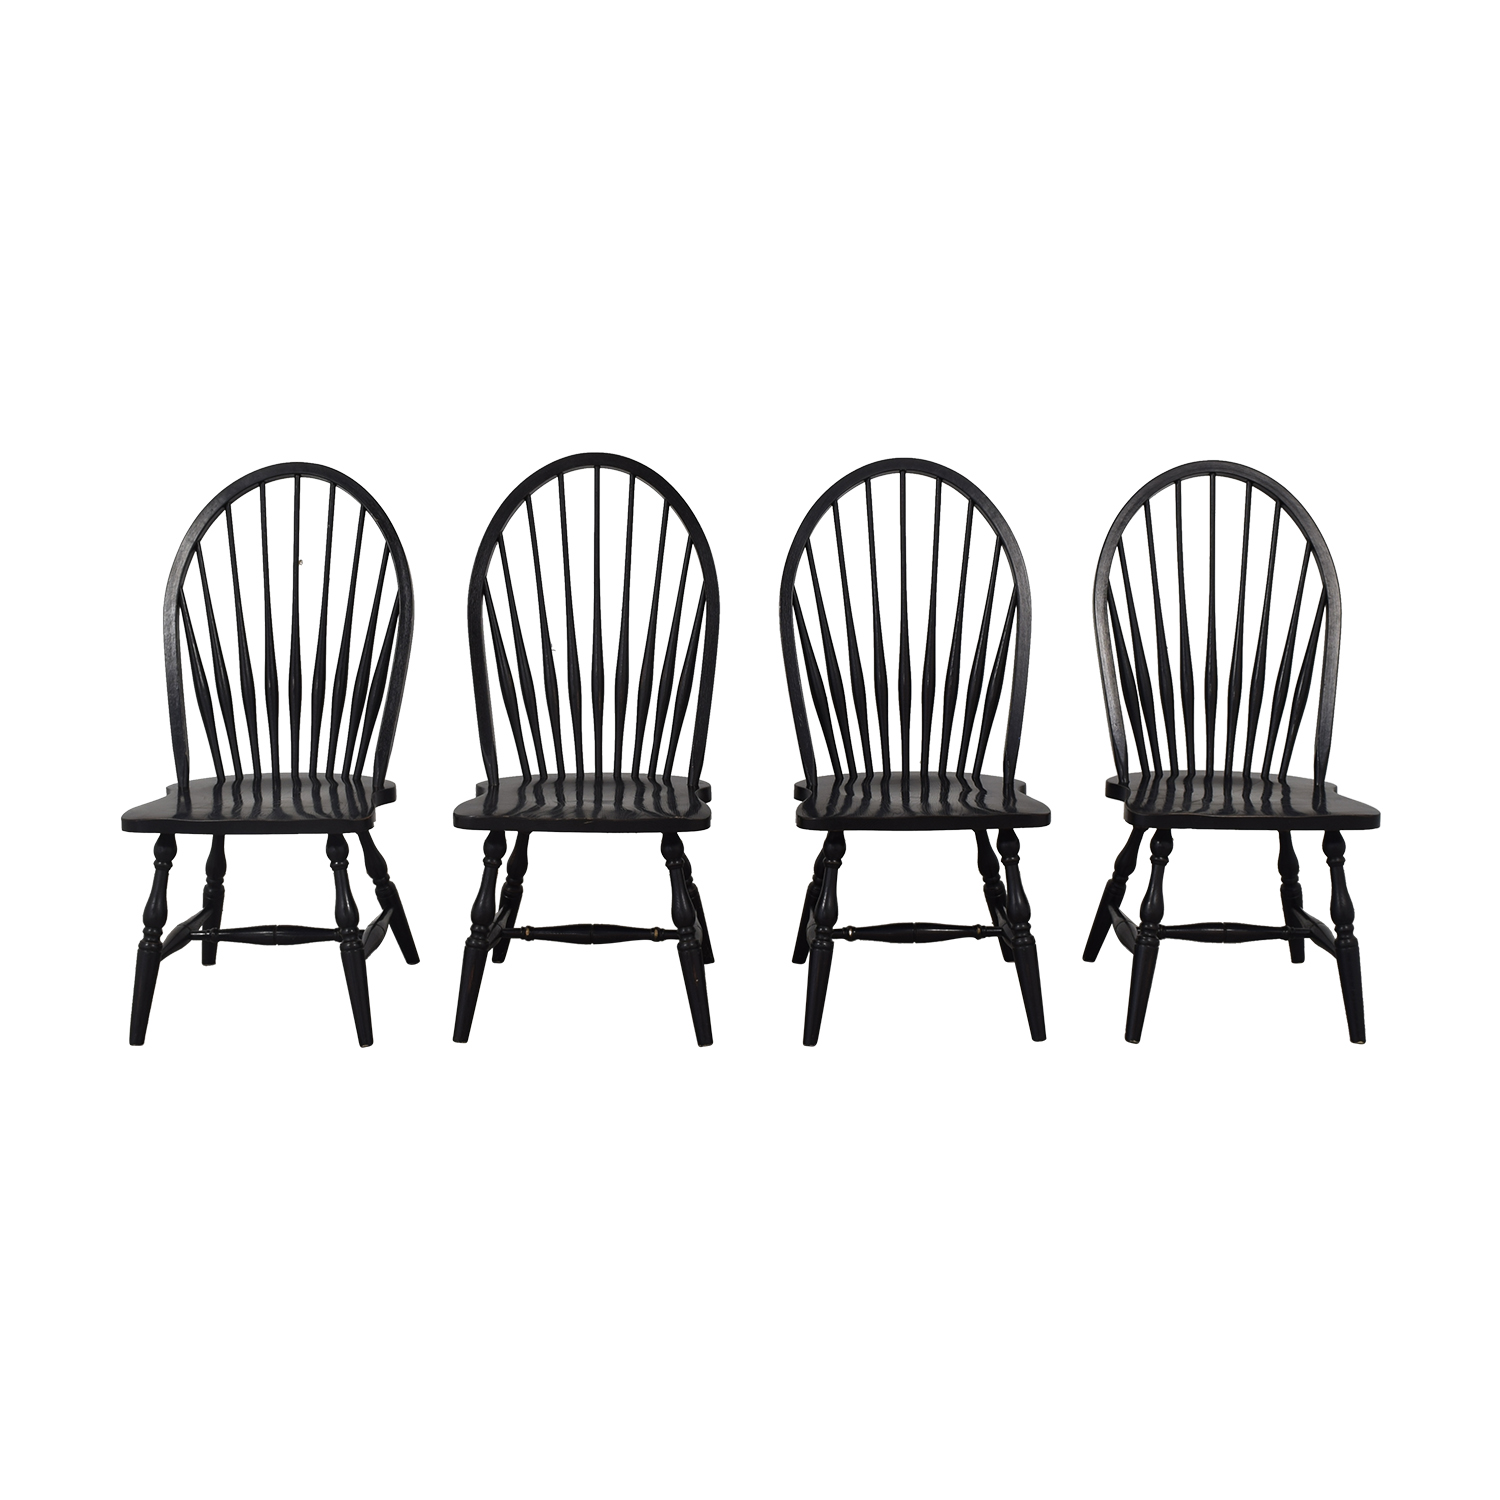 Country Willow Country Willow Windsor Dining Chairs nj